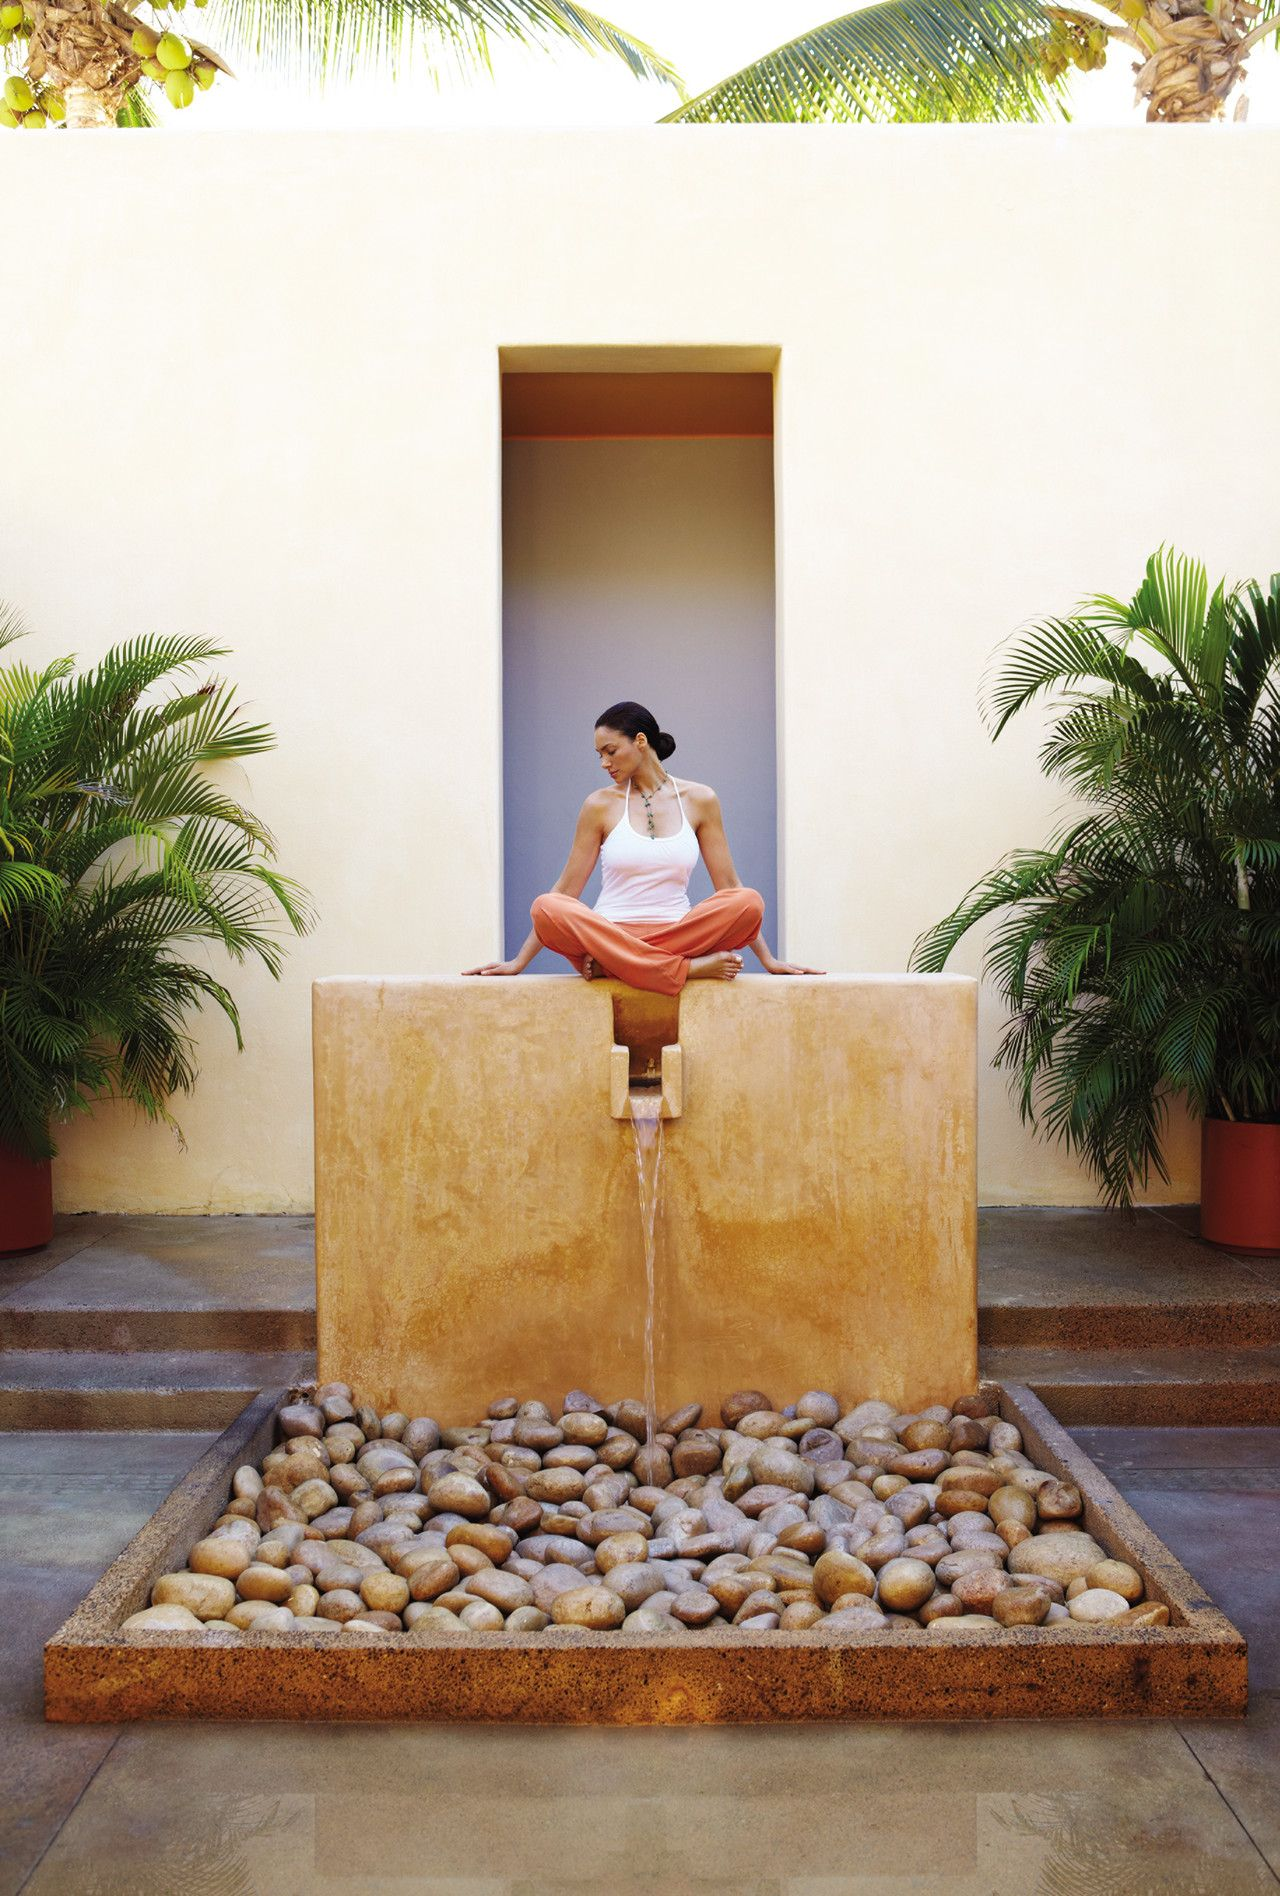 /Volumes/RussoDrobo/Four Seasons, Punta Mita/Output/Ann's Usage/Image Library/.PuntaMita_4376.tif